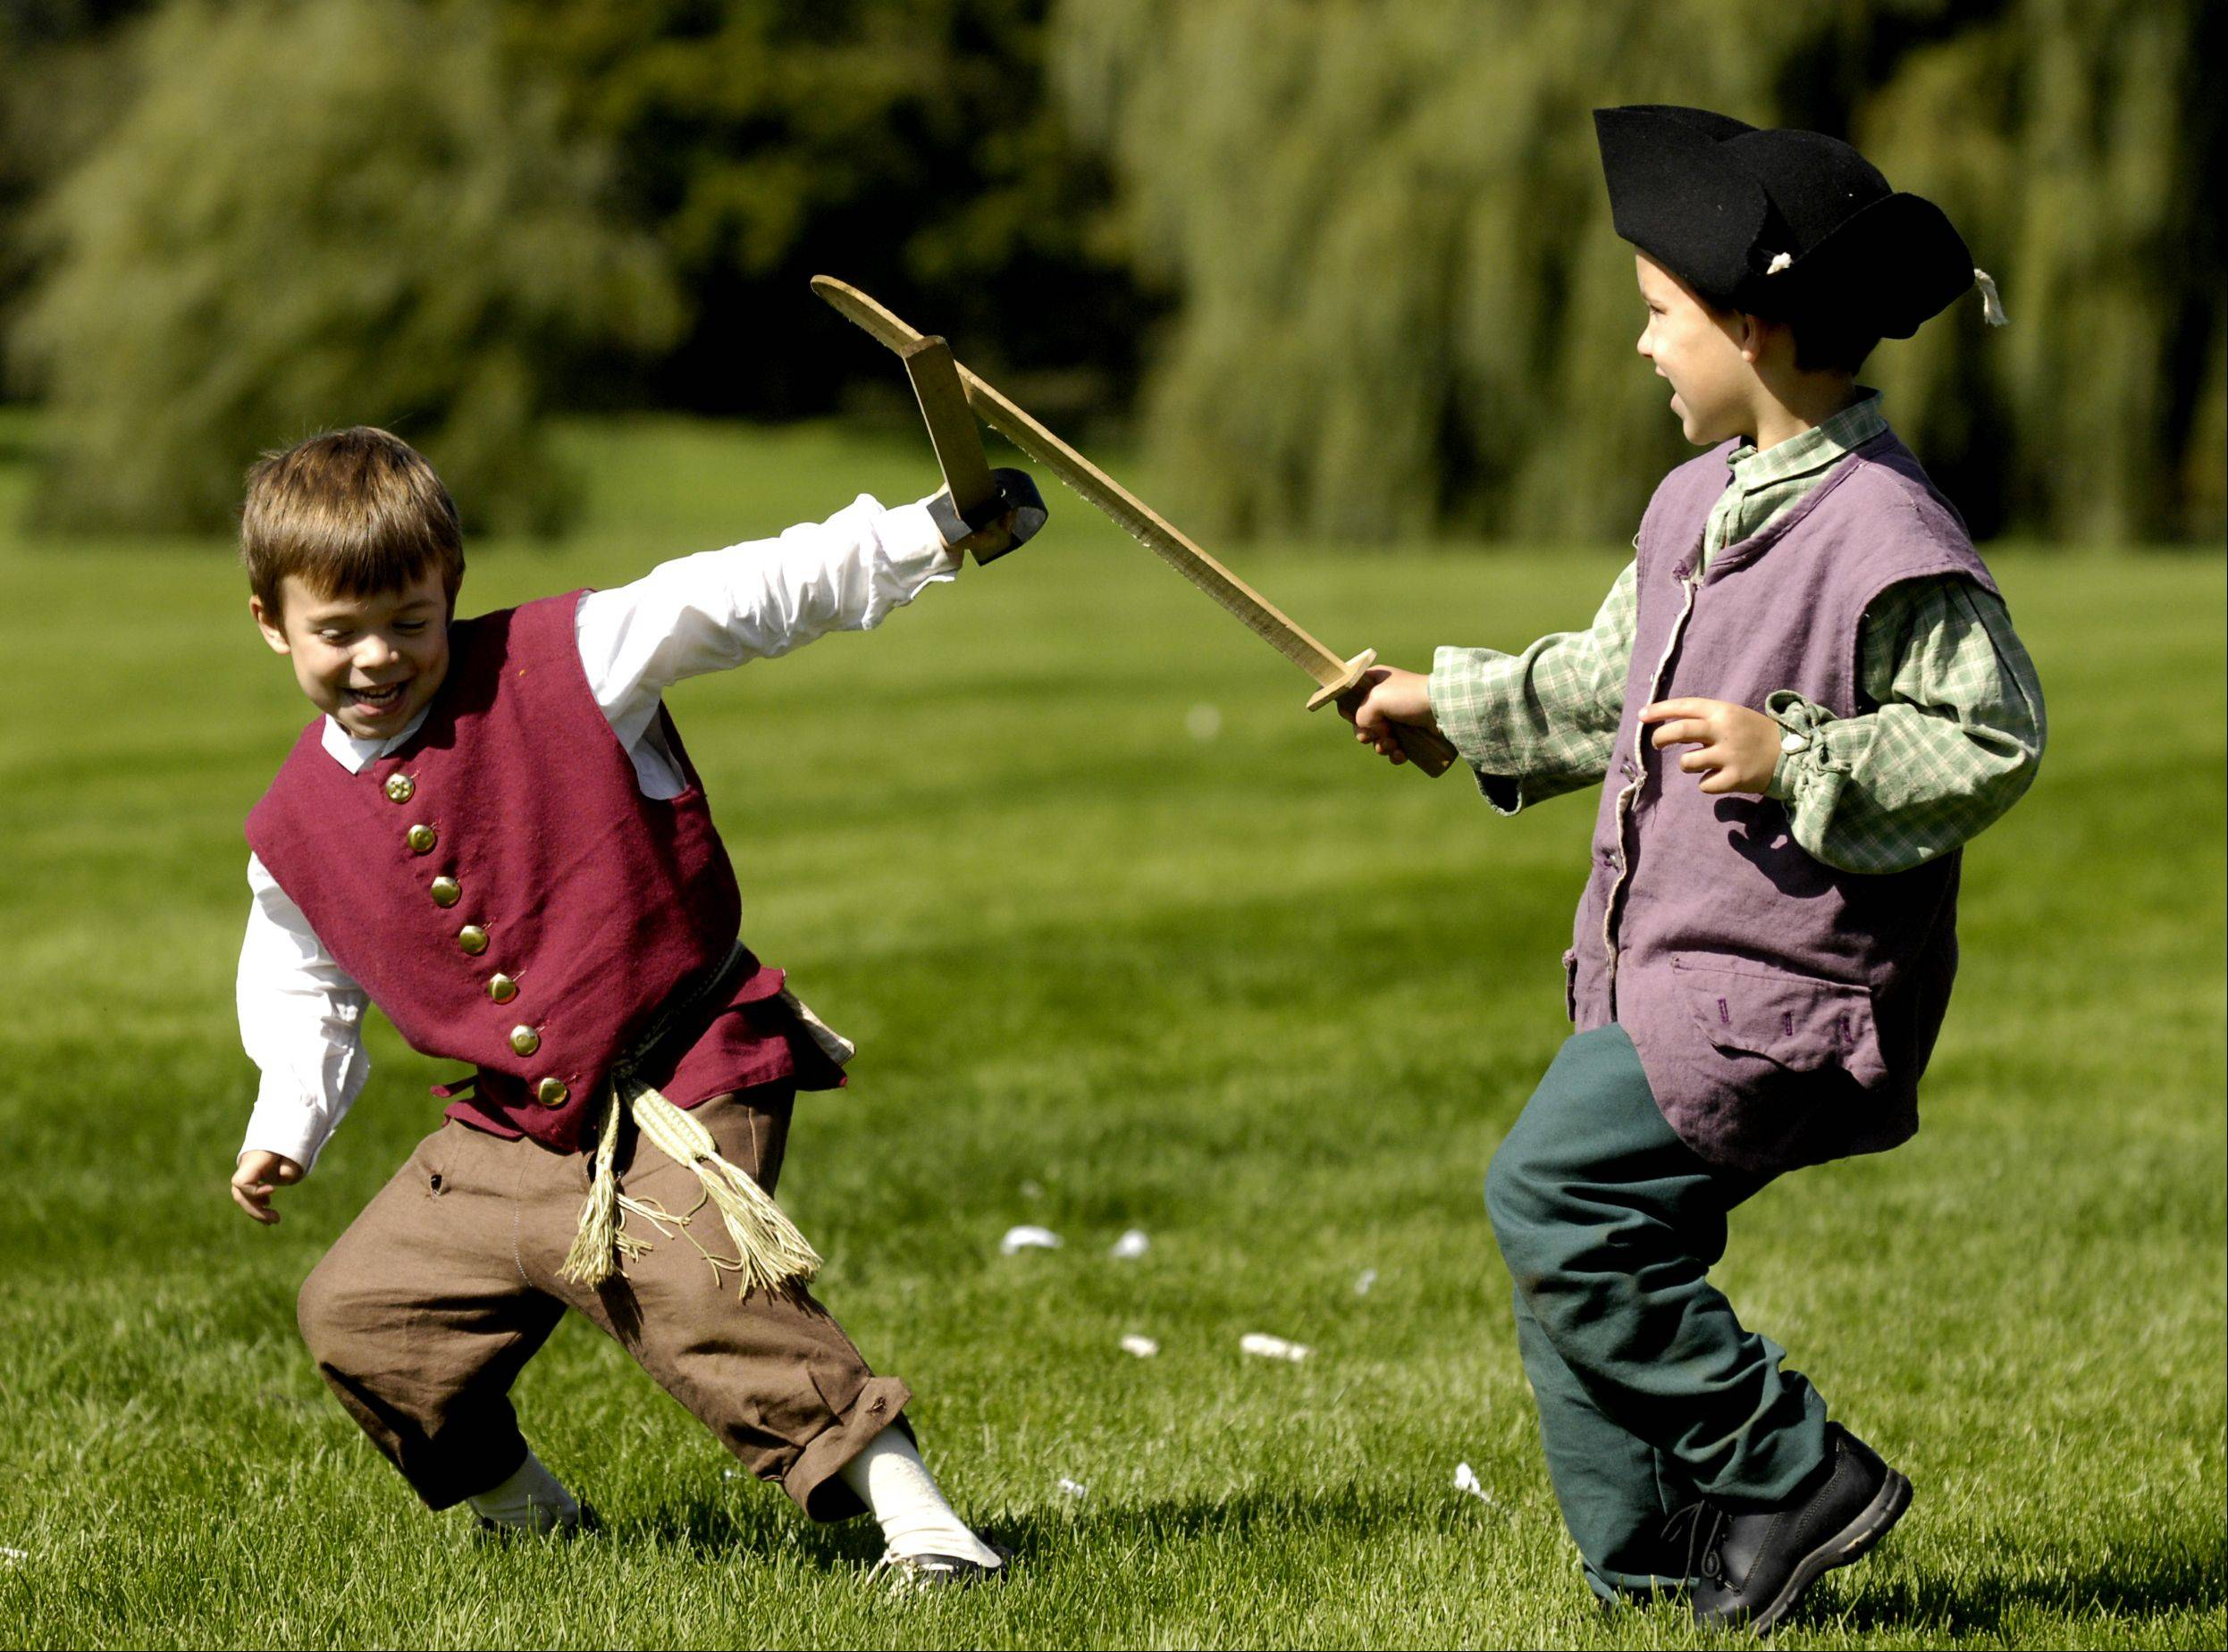 James LeRoy, 6, of Kankakee and Mason Broski, 6, of Hobart, Indiana battle it out during the Revolutionary War Re-enactment weekend at Cantigny Park in Wheaton, Sunday.